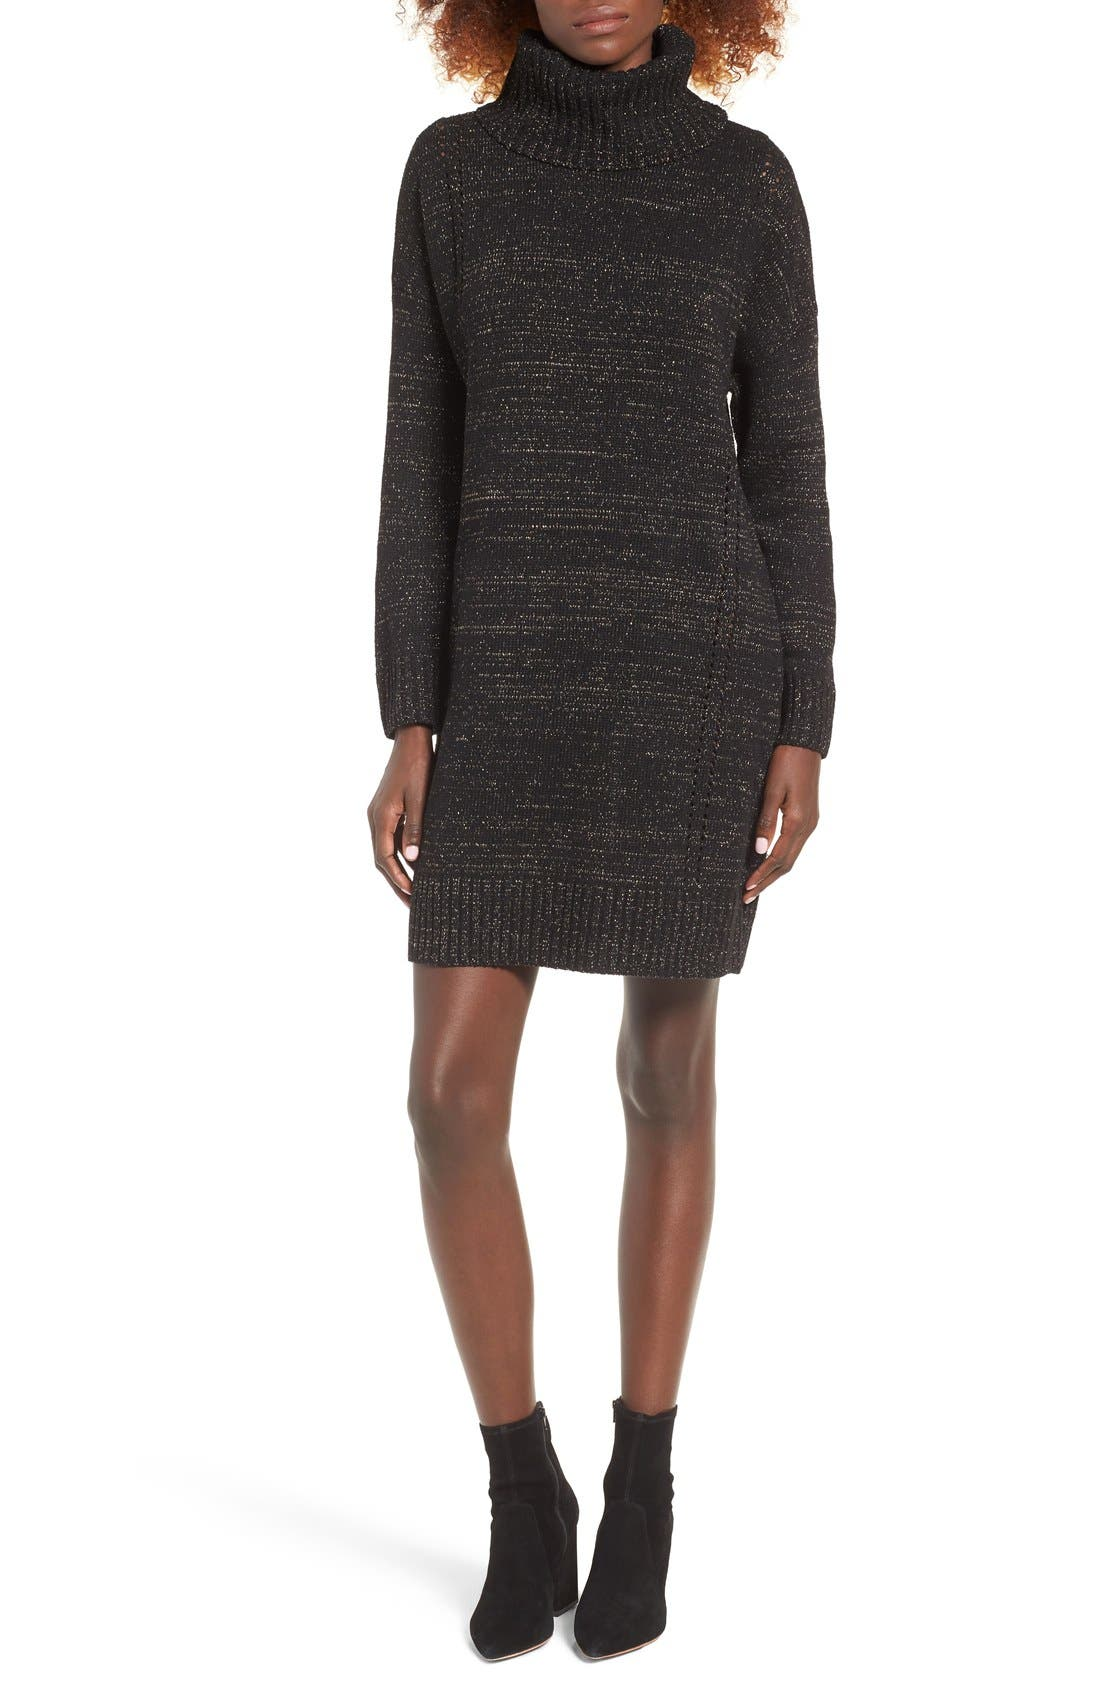 Main Image - MOON RIVER Turtleneck Sweater Dress